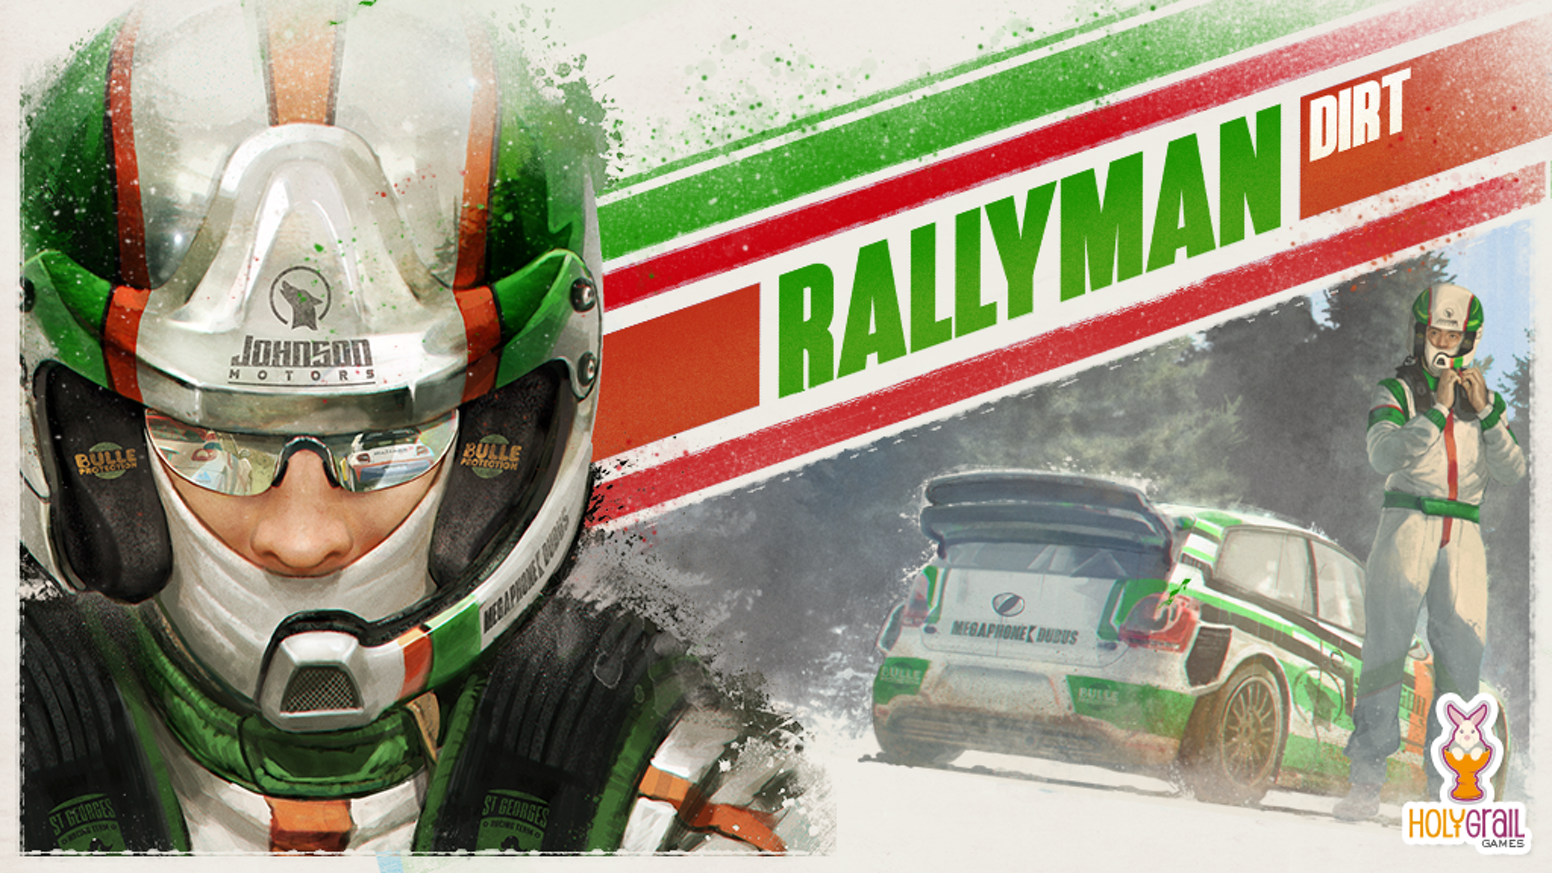 Get behind the wheel and race against the clock as you drift, slide, jump and push your luck through your own high-octane Rally!